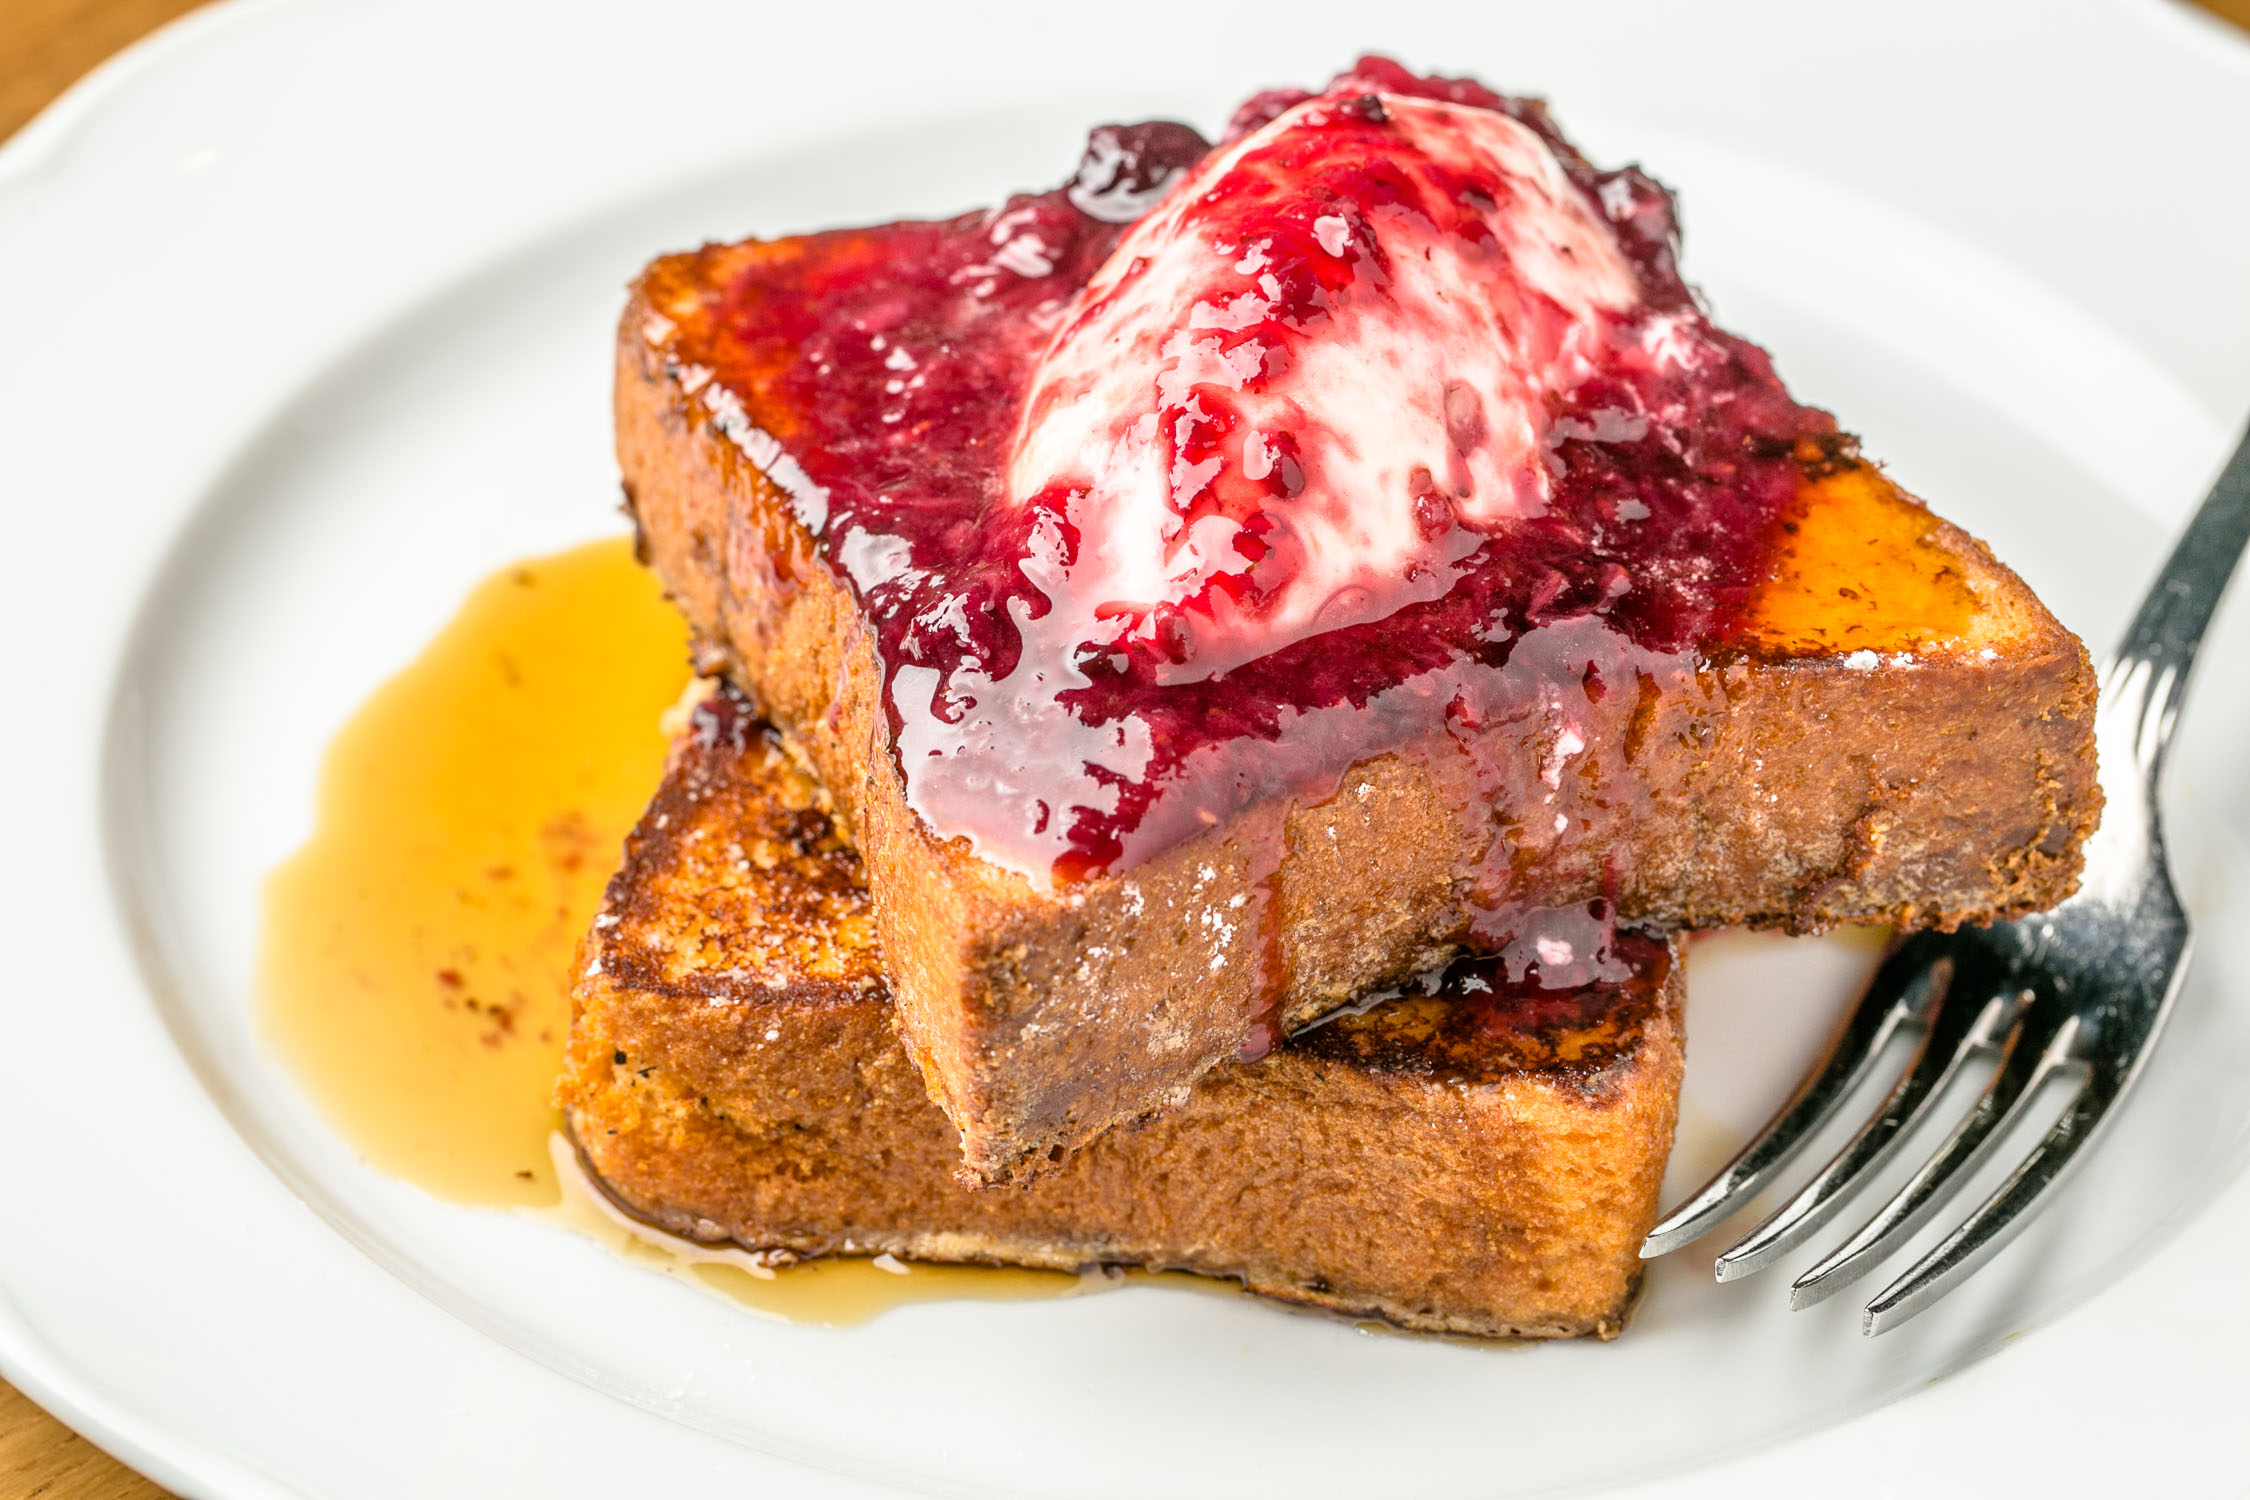 Omni-Hotel-at-The-Battery-Atlanta-Suntrust-Park-French-Toast-Syrup-Erik-Meadows